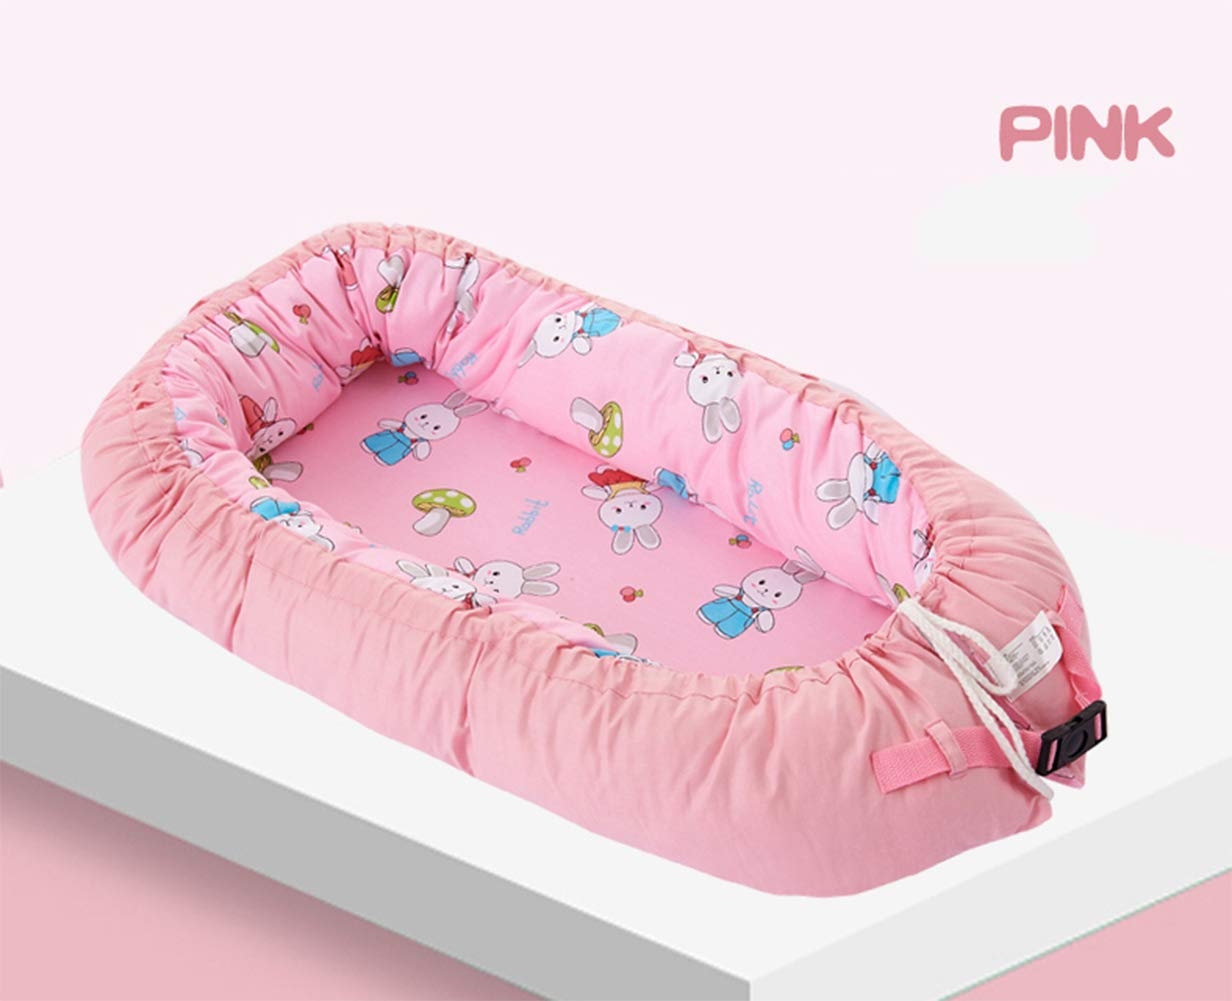 LNDD-2 in 1 Baby Nest Cushion Cocoon Baby Lounger Bionic Uterine Cradle Mattresses Travel Bumpers,Pink LNDD ★CARE FOR THE BABY'S SPINE: The sponge mattress fits the baby's back, moderately soft and hard, and the sleep is evenly applied for a long time. ★RETRACTABLE DESIGN: buckle drawstring design Telescopic adjustment Different ages Different comfort spaces. ★MULTI-FUNCTION: windproof and anti-mosquito shading, easy to use, handle design foldable, easy to carry out and easy to take 1